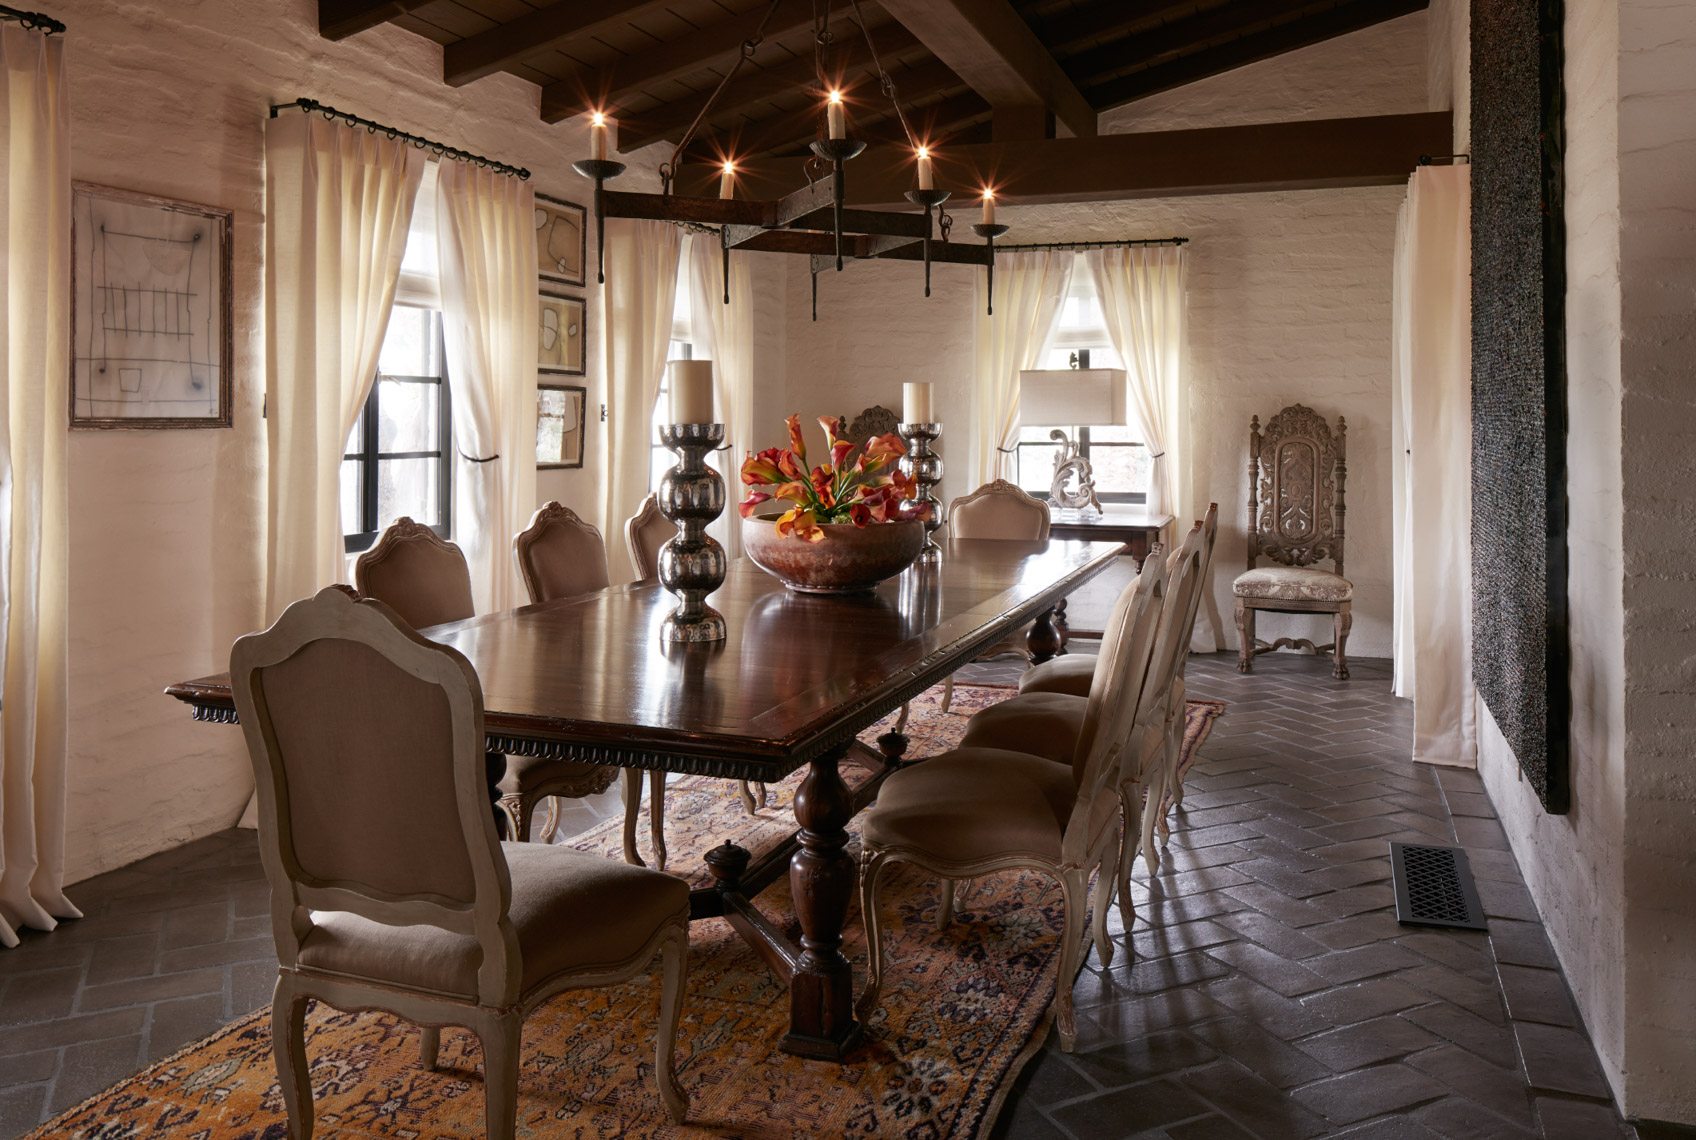 wooden dining room table with beige chairs and ceiling candle lights